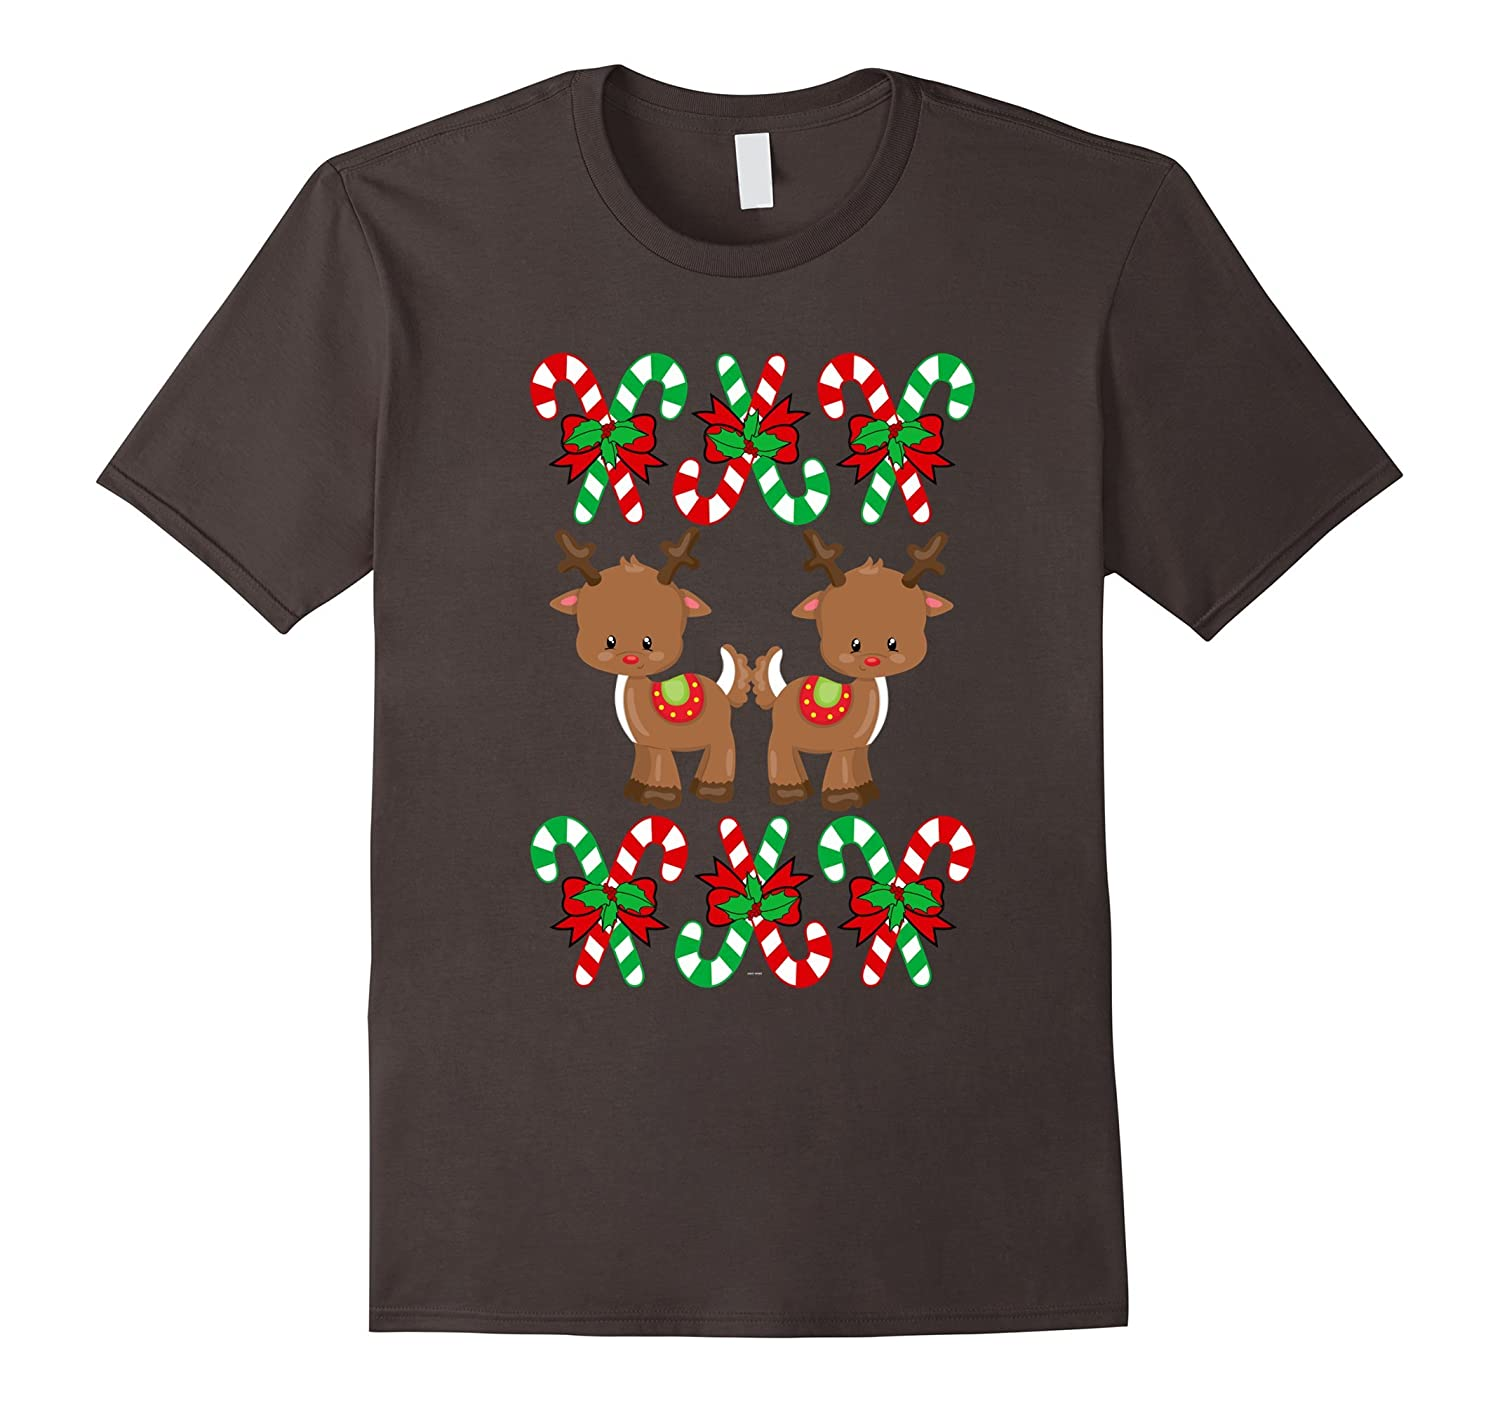 Reindeer Funny ugly christmas sweater look gift t shirt